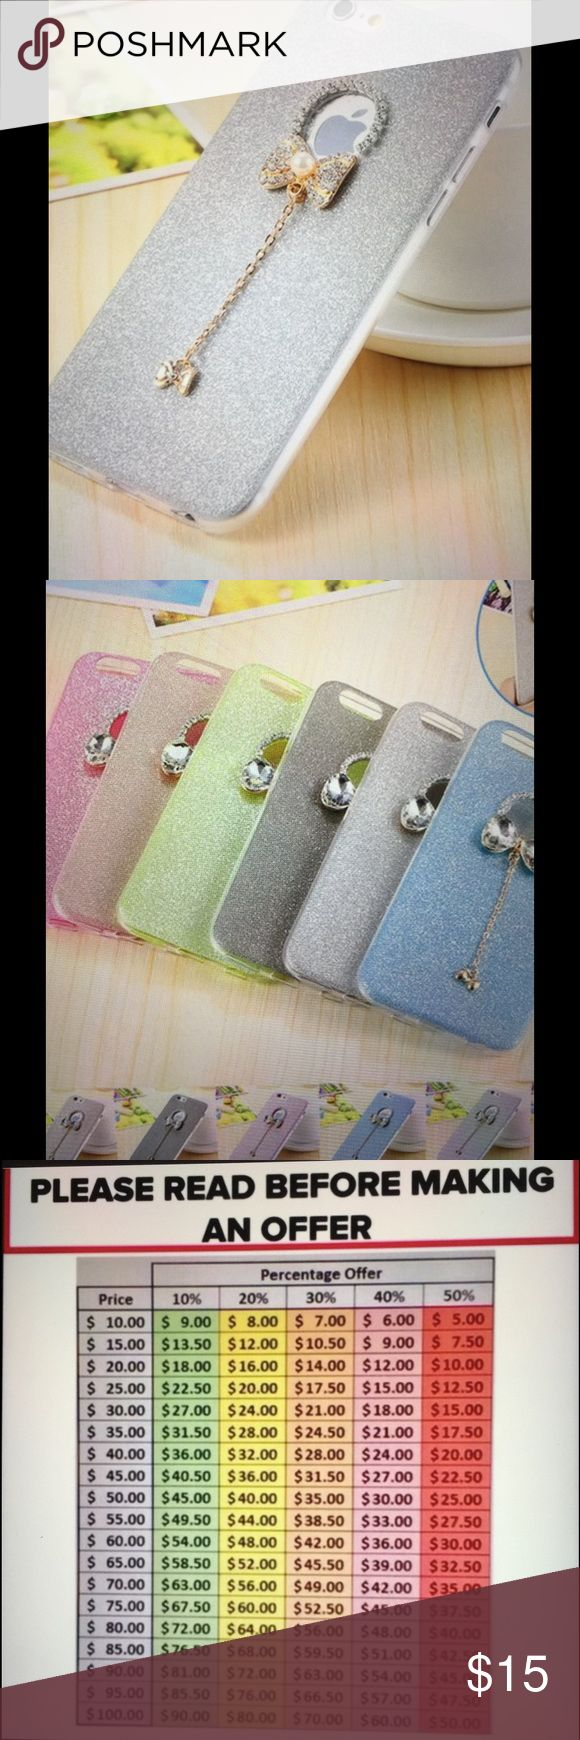 Phone case silver iPhone 6 Plus This fun phone case is a great accessory that comes in a variety of colors-with bling to make your phone pop! Have these in 3 colors silver, pastel pink, pastel blue, and pastel green. Check closet for other colors. Accessories Phone Cases